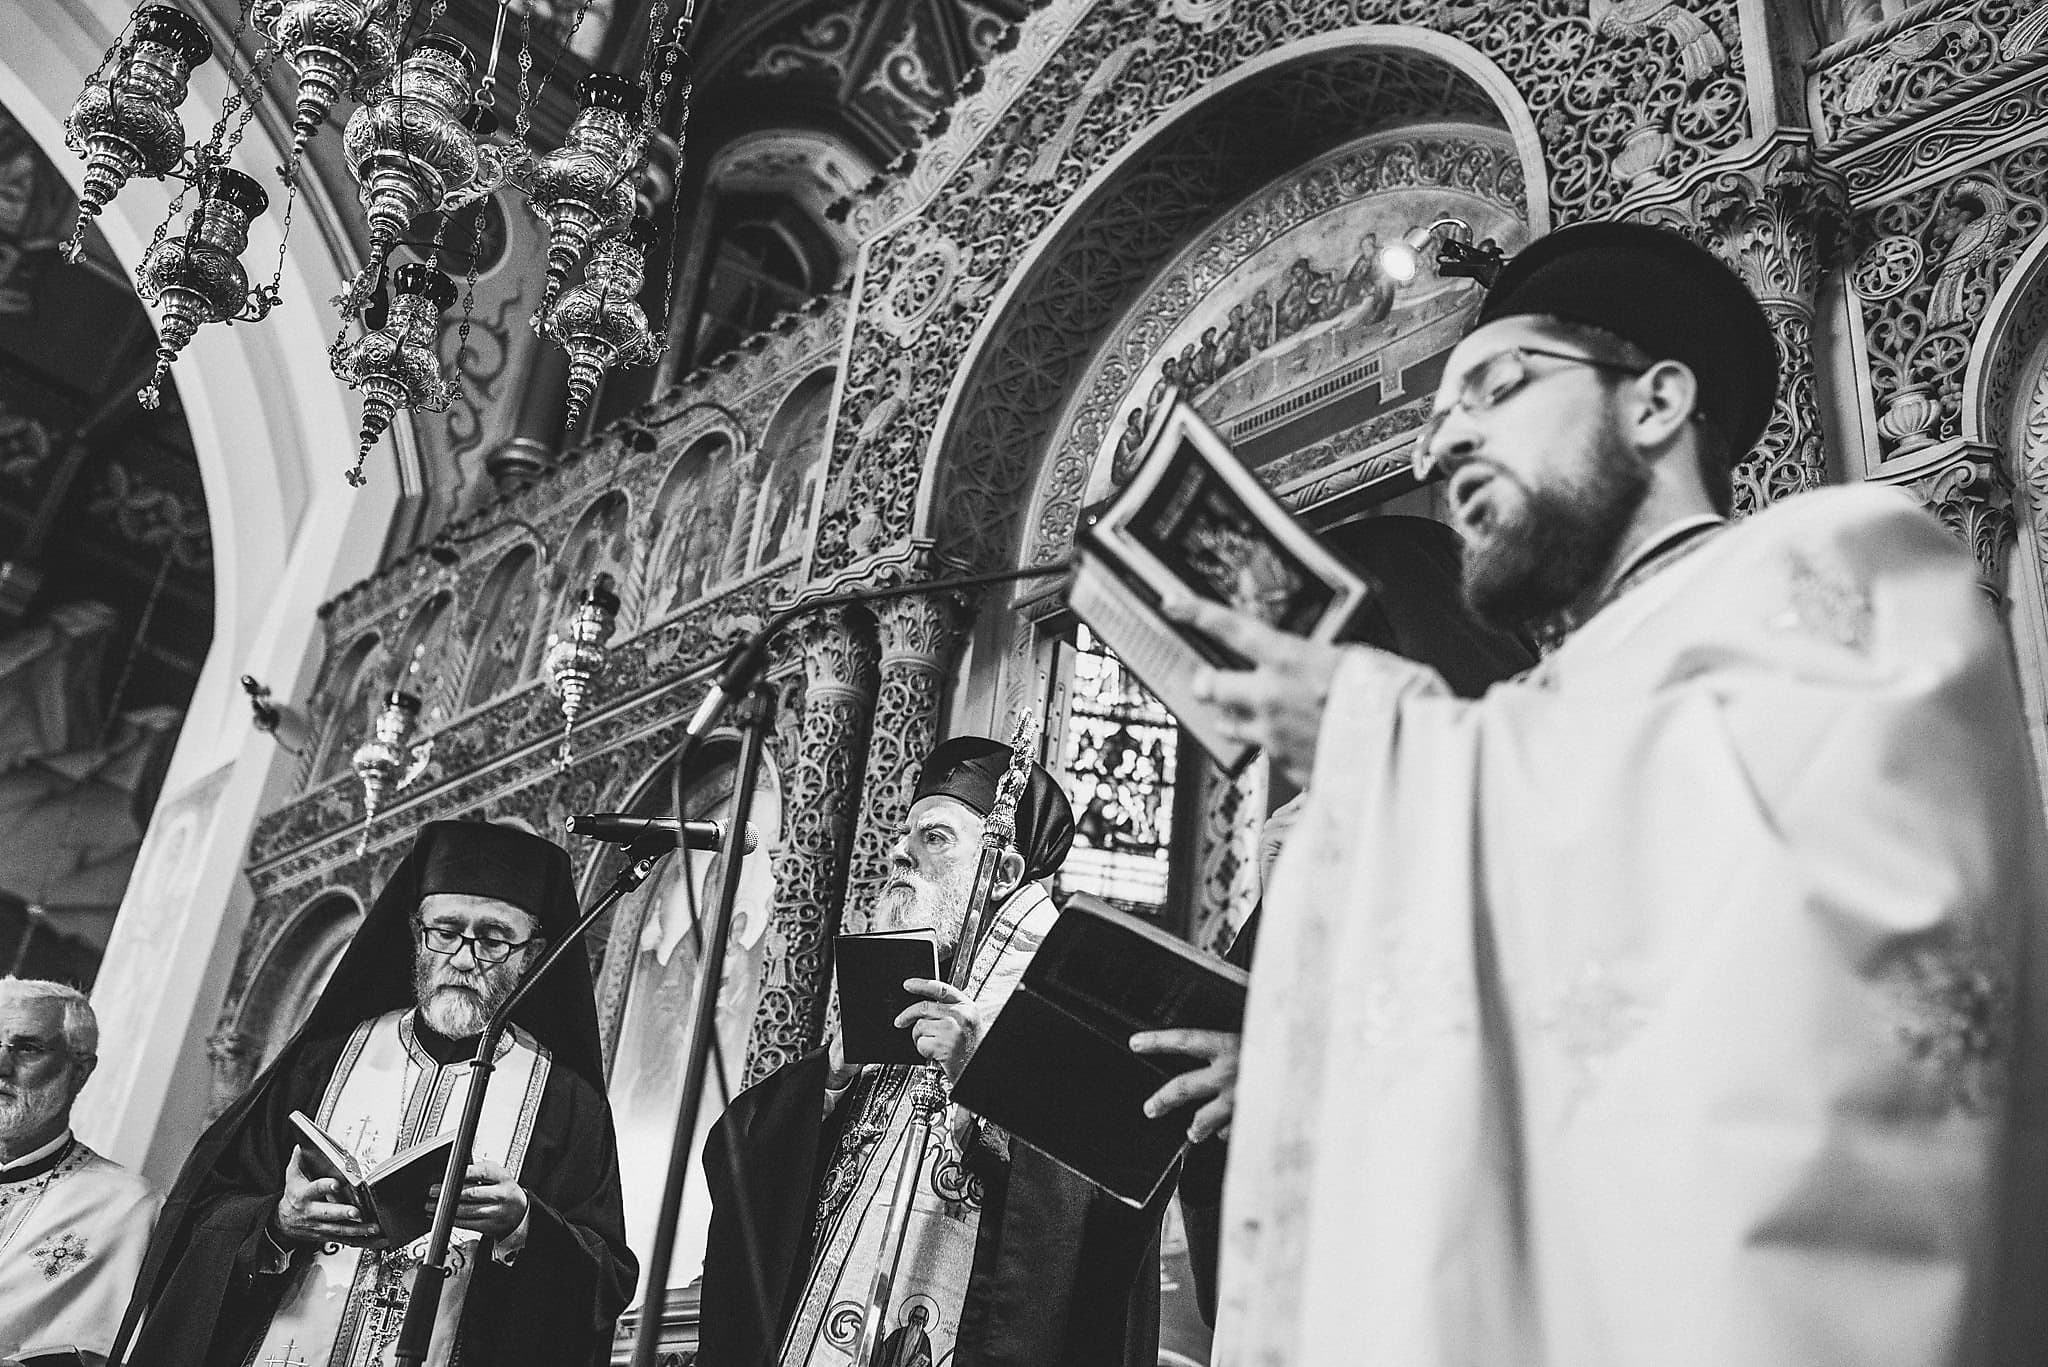 Greek priests sing hymns at a Greek Orthodox Ceremony at London's Saint Andrew's Orthodox Church